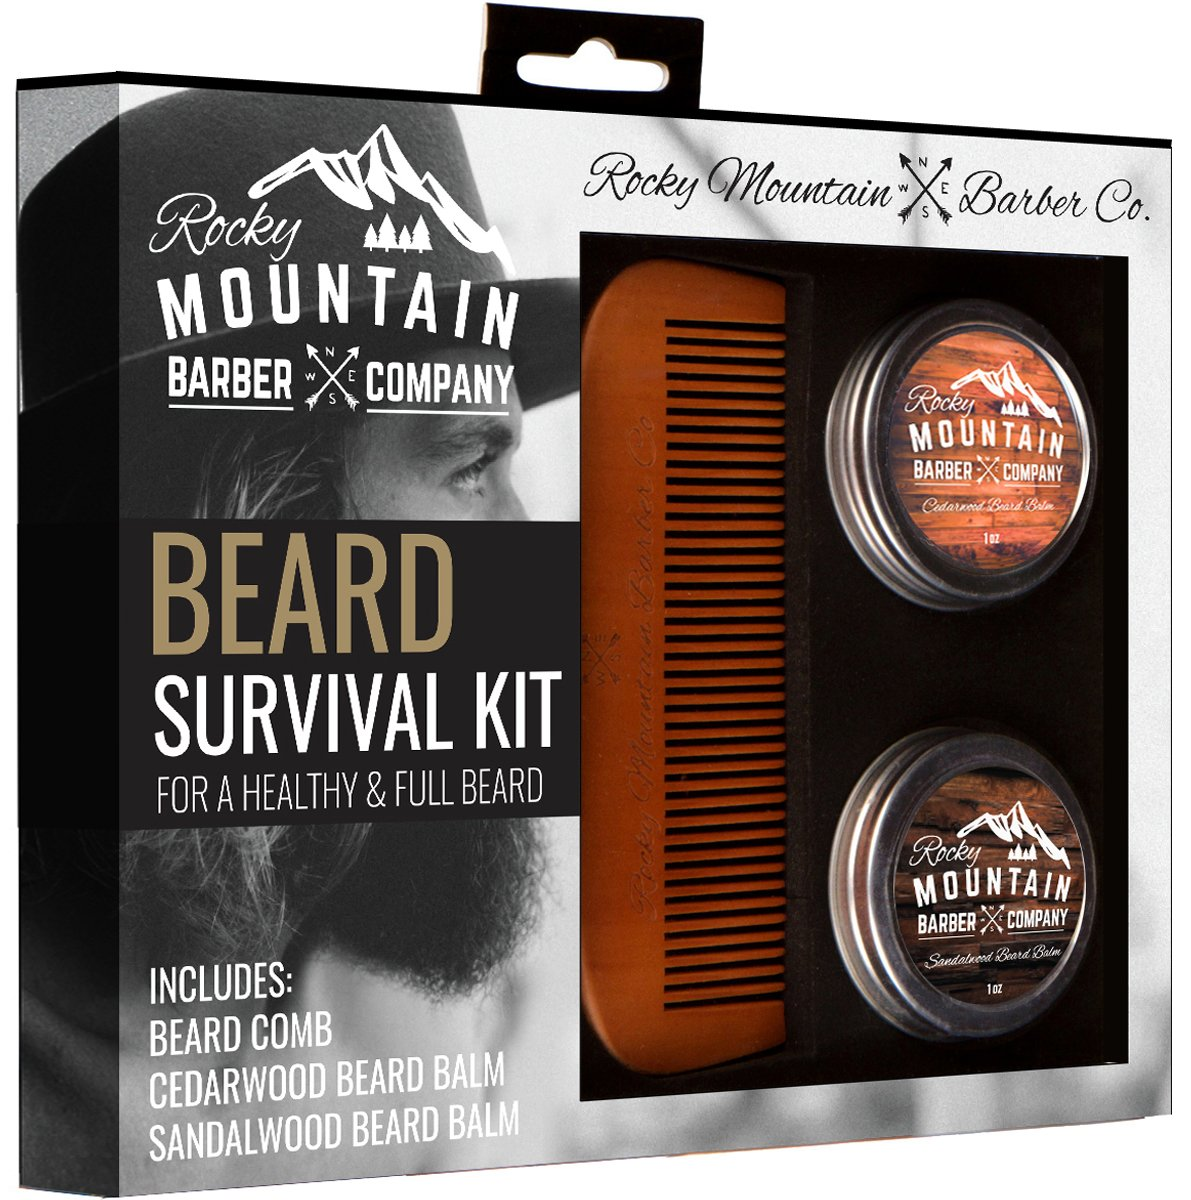 Beard Gift Set - All-In-One Beard Care Kit with Wooden Beard/Hair Comb and Two Beard Balms (Cedarwood and Sandalwood - 1oz) - Packaged in Gift Box Rocky Mountain Barber Company